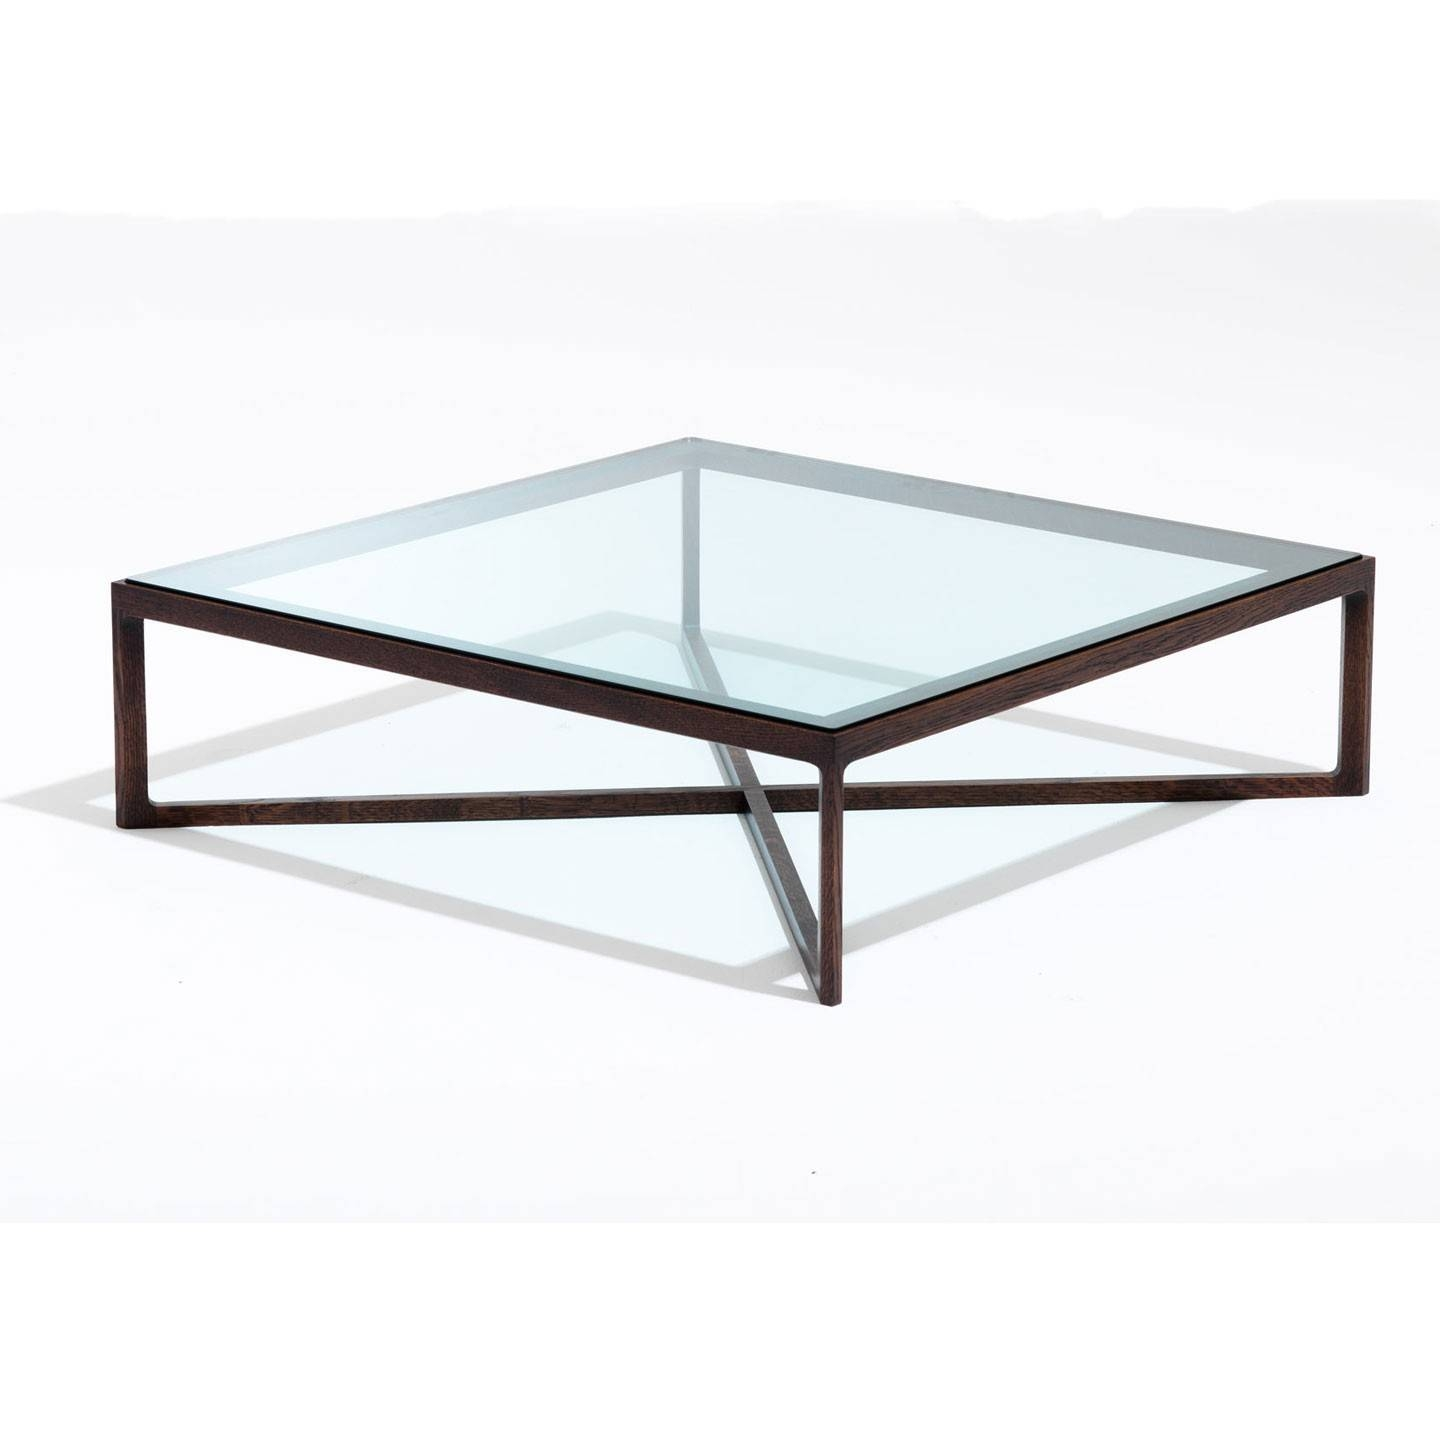 Square Glass Coffee Table For Living Room Decoration – Ruchi Designs In Iron Glass Coffee Table (View 10 of 15)